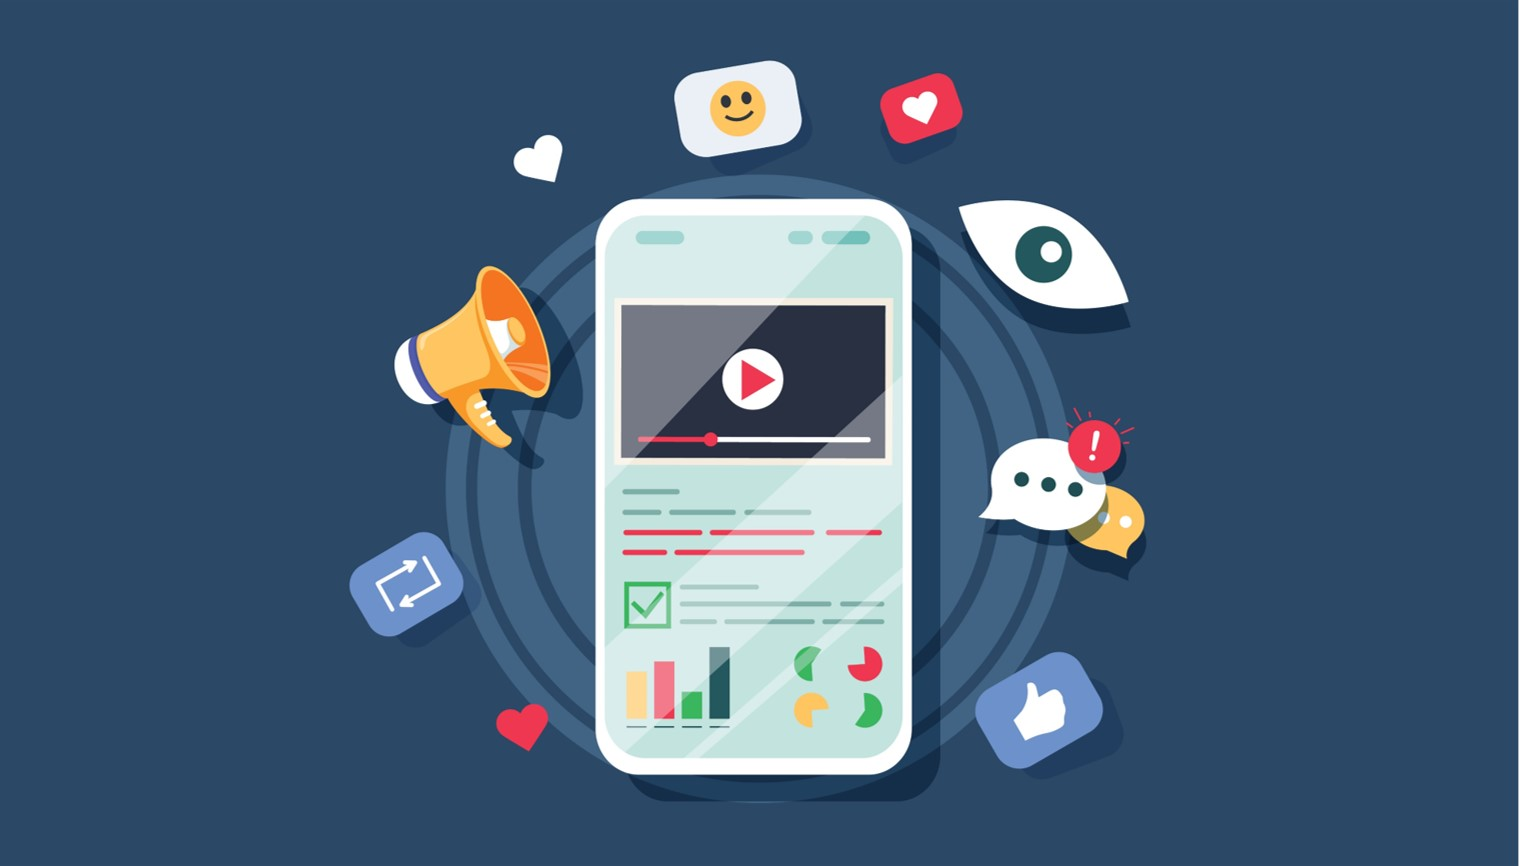 Video marketing is your next thing! | Social media trend